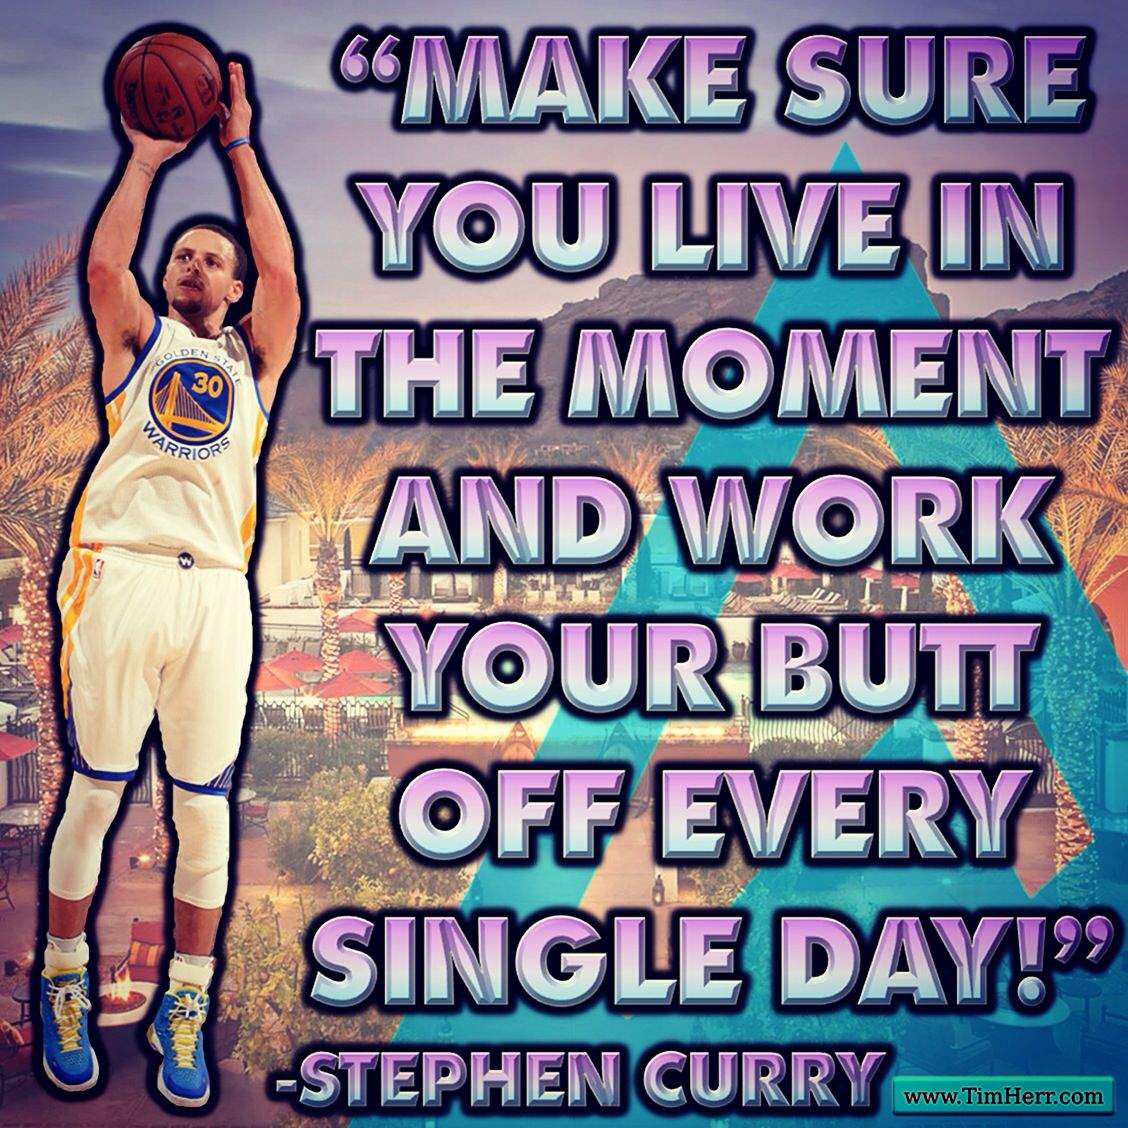 """Make sure you live in the moment and work your butt off every single day!"" -Stephen Curry (US NBA MVP 1988-) #quoteoftheday"